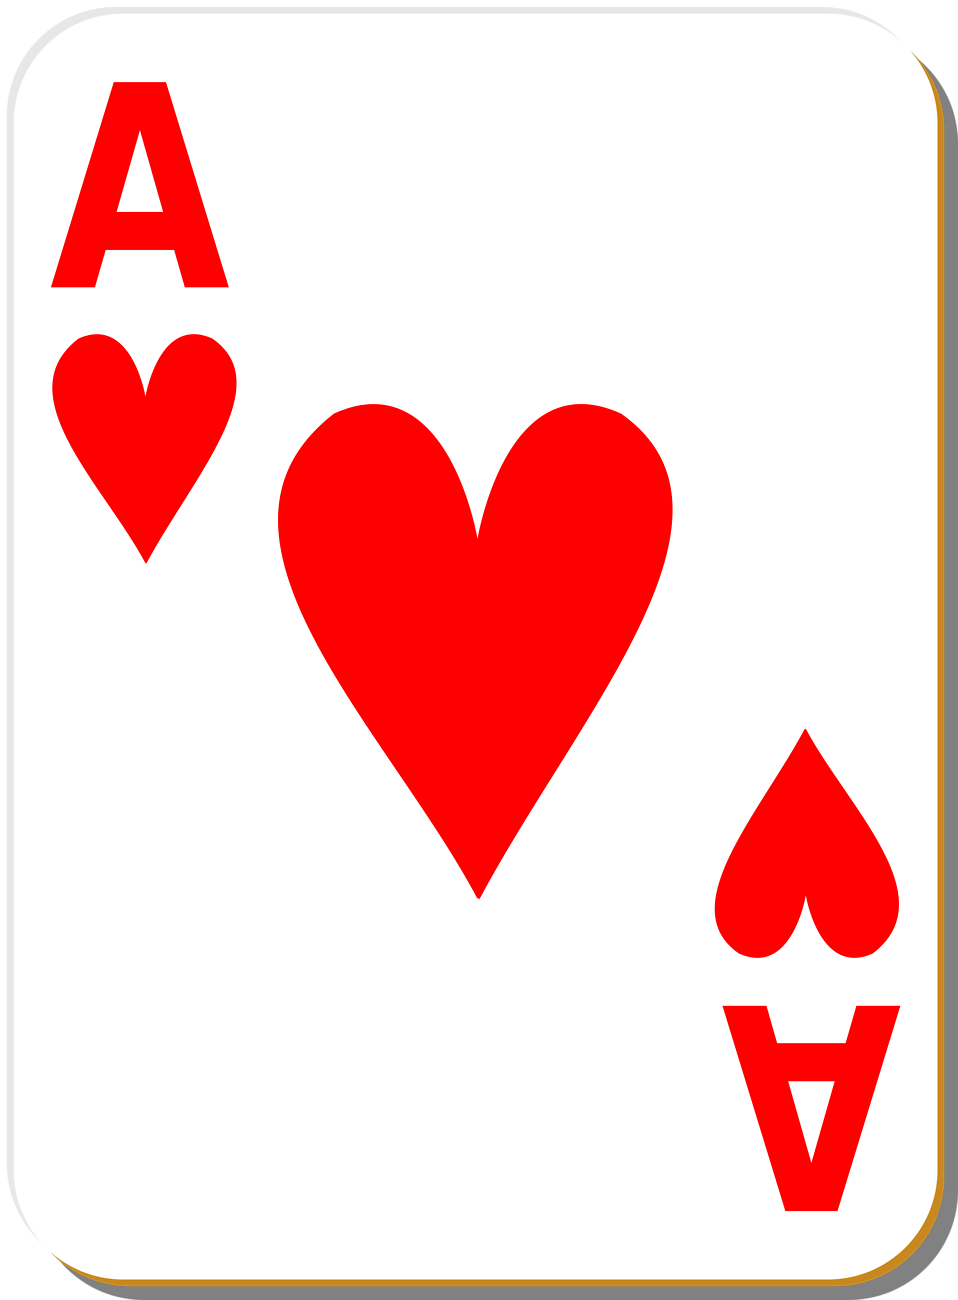 deck of cards clipart at getdrawings com free for personal use rh getdrawings com playing cards clip art borders playing cards clipart free download